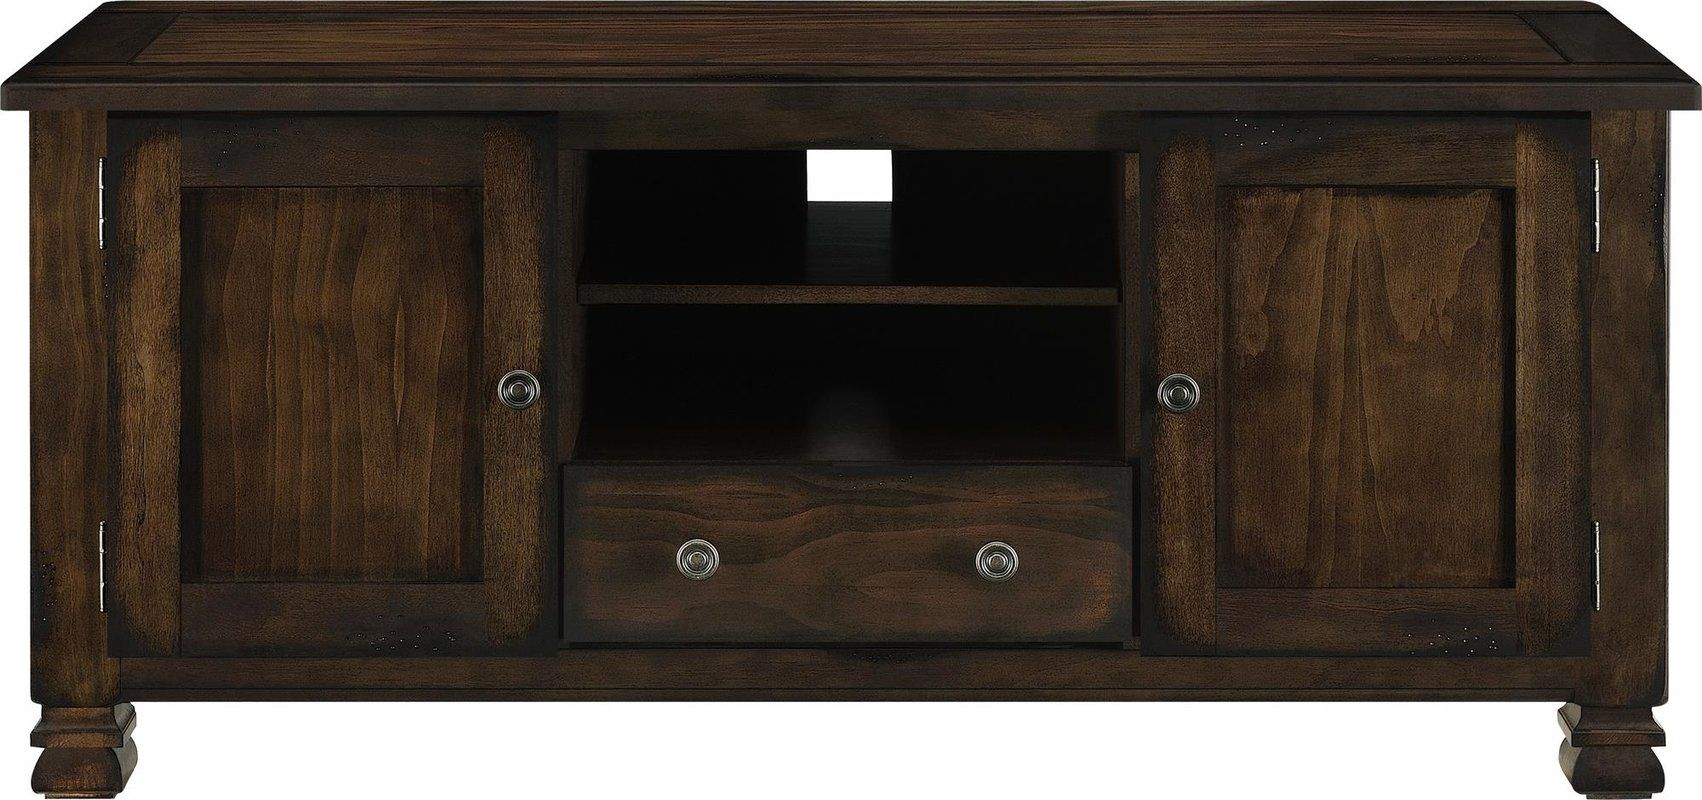 Brackenridge Tv Stand For Tvs Up To 55"